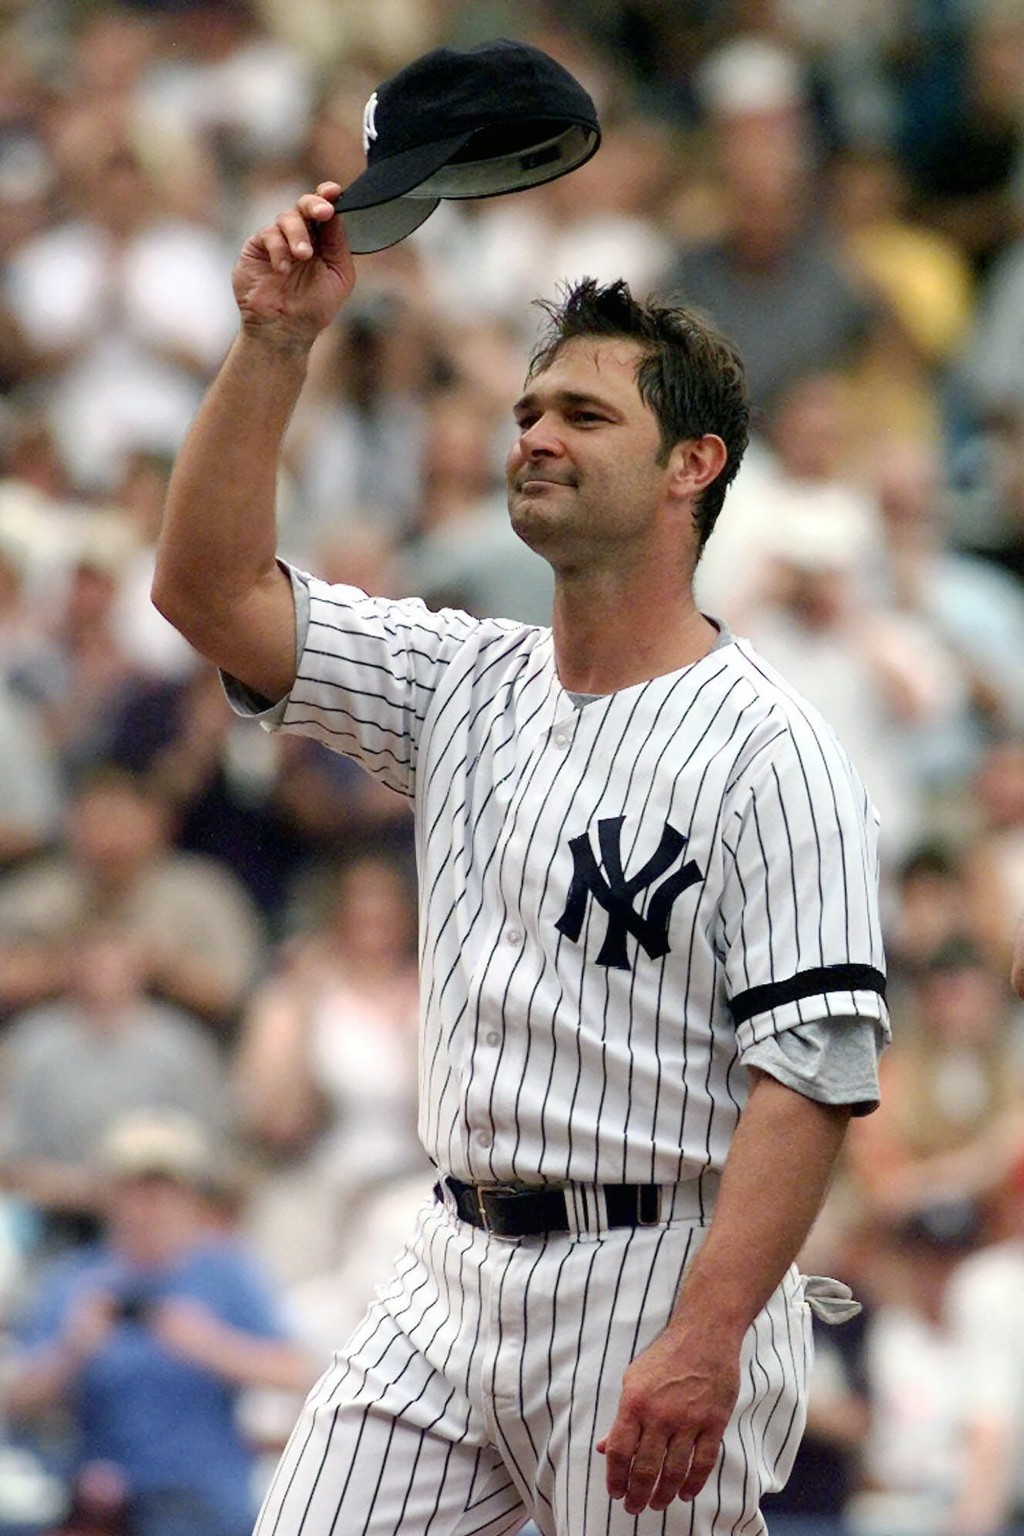 FILE - In this Sept. 2, 2000, file photo, New York Yankees' Don Mattingly tips his cap to the crowd as he is introduced for the first time during Old ...